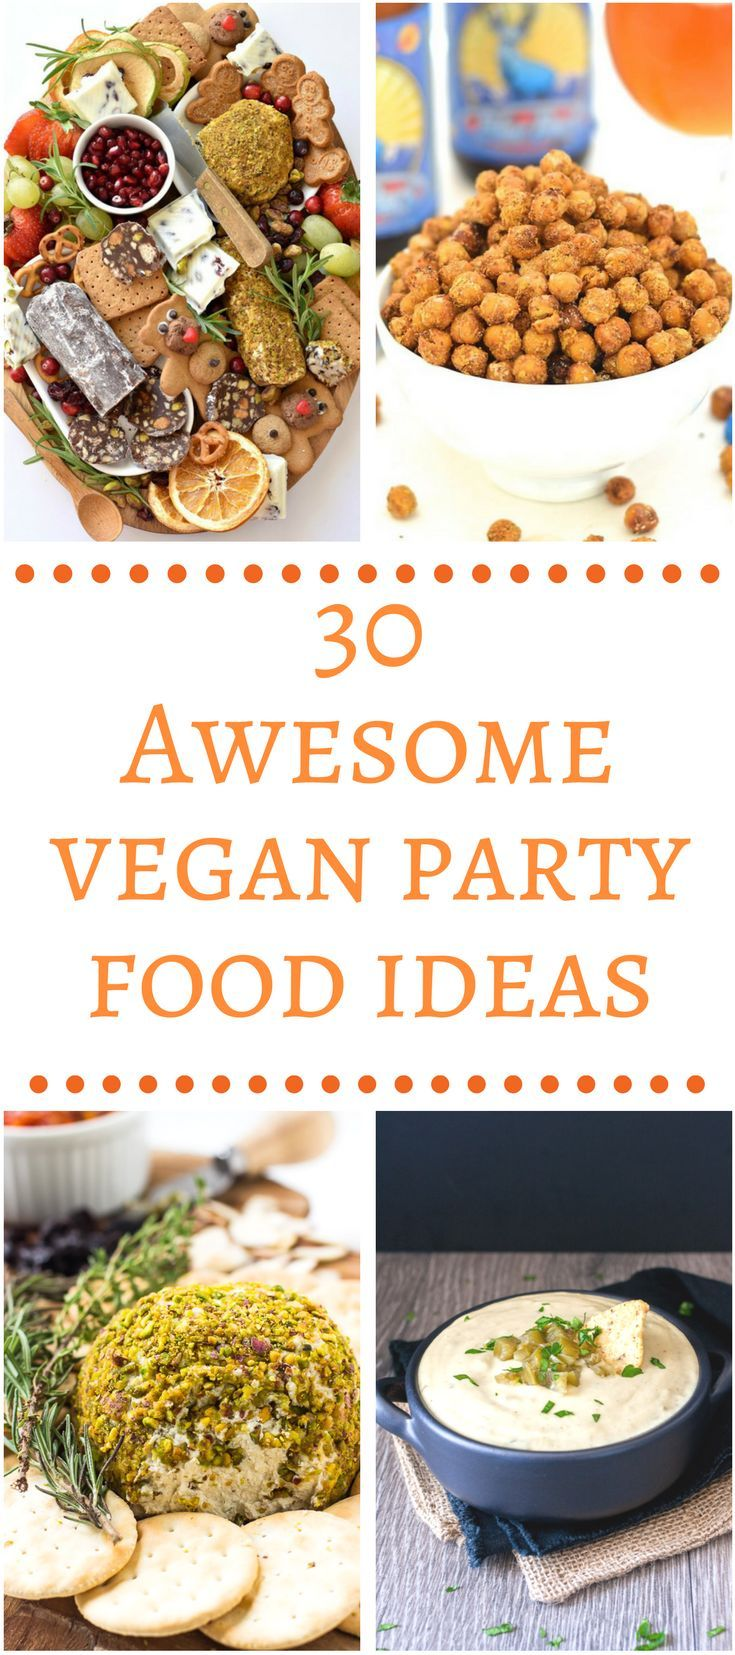 A good party or get together needs great food! This collection of Awesome Vegan Party Food Ideas is sure to impress your guests.